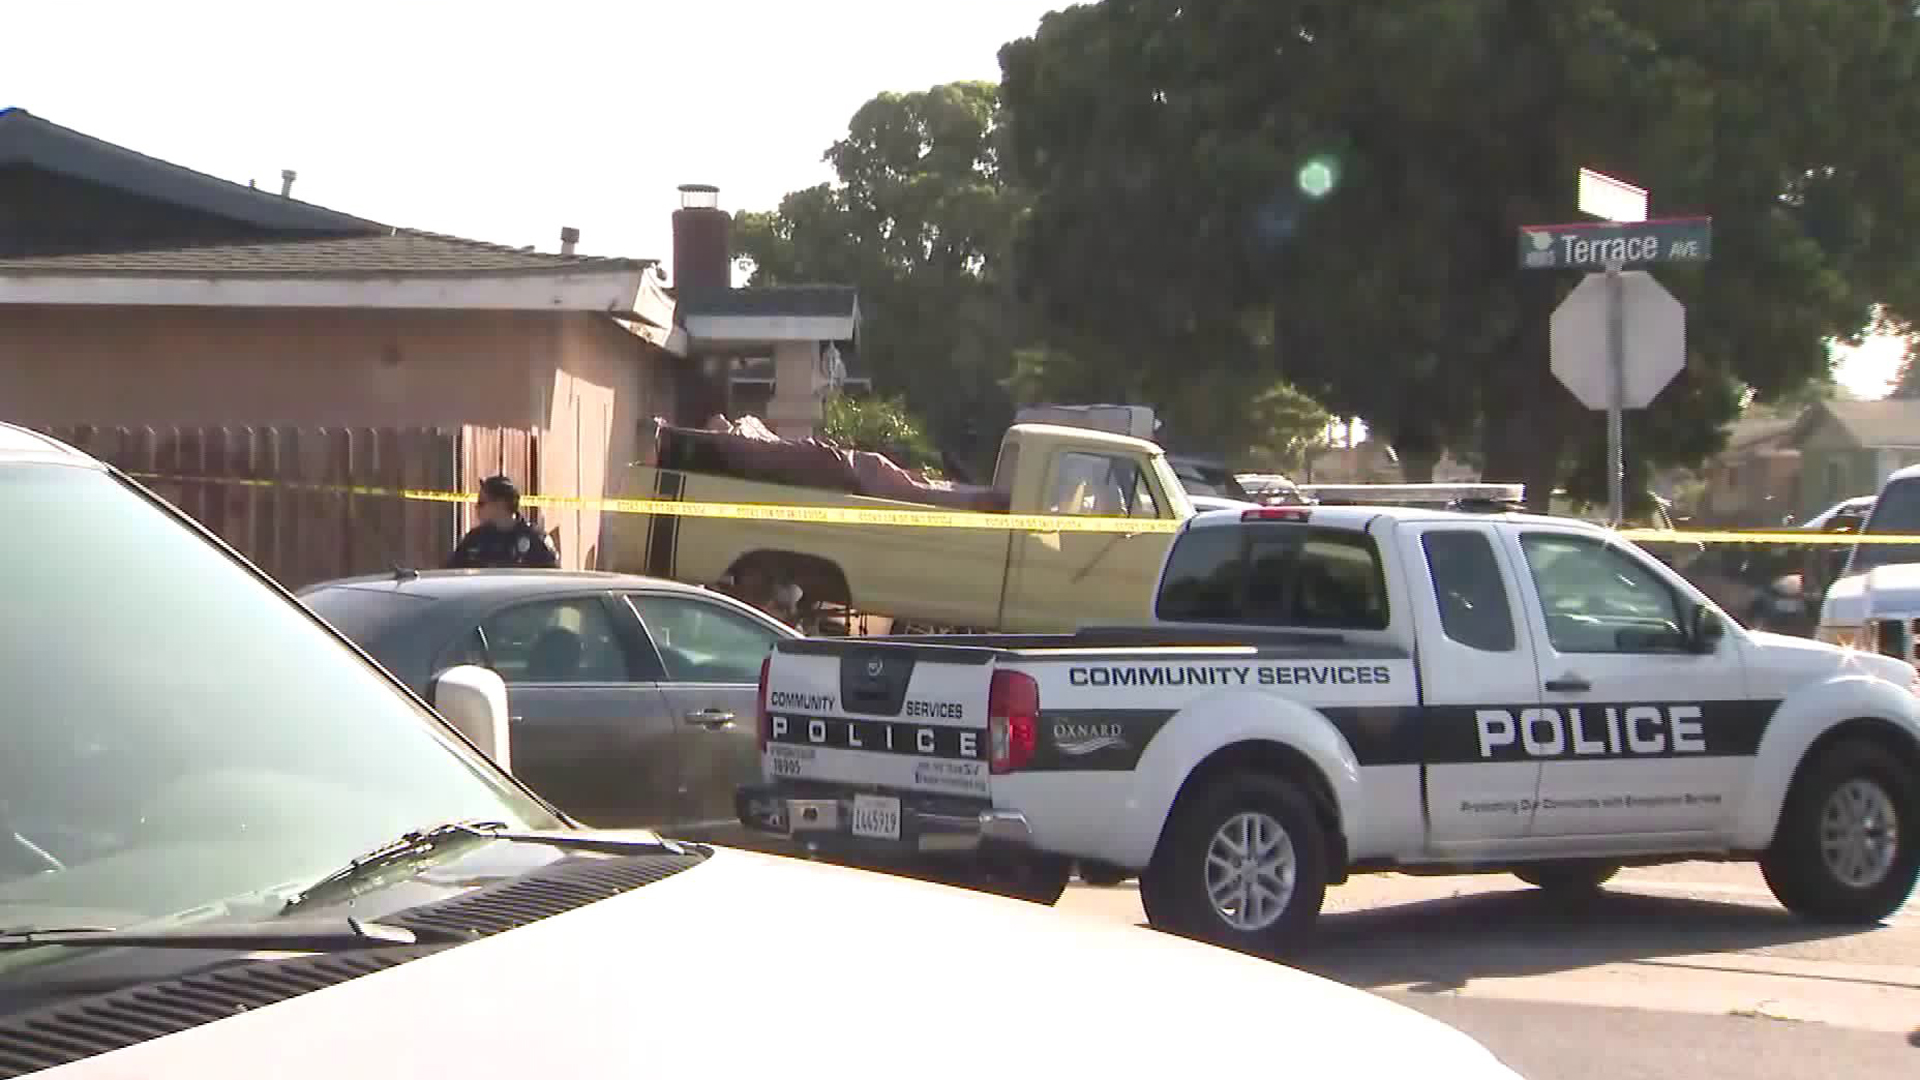 An Oxnard police vehicle is seen at the scene of a deadly shooting in the 1000 block of Berkshire Street on Aug. 31, 2019. (Credit: KTLA)